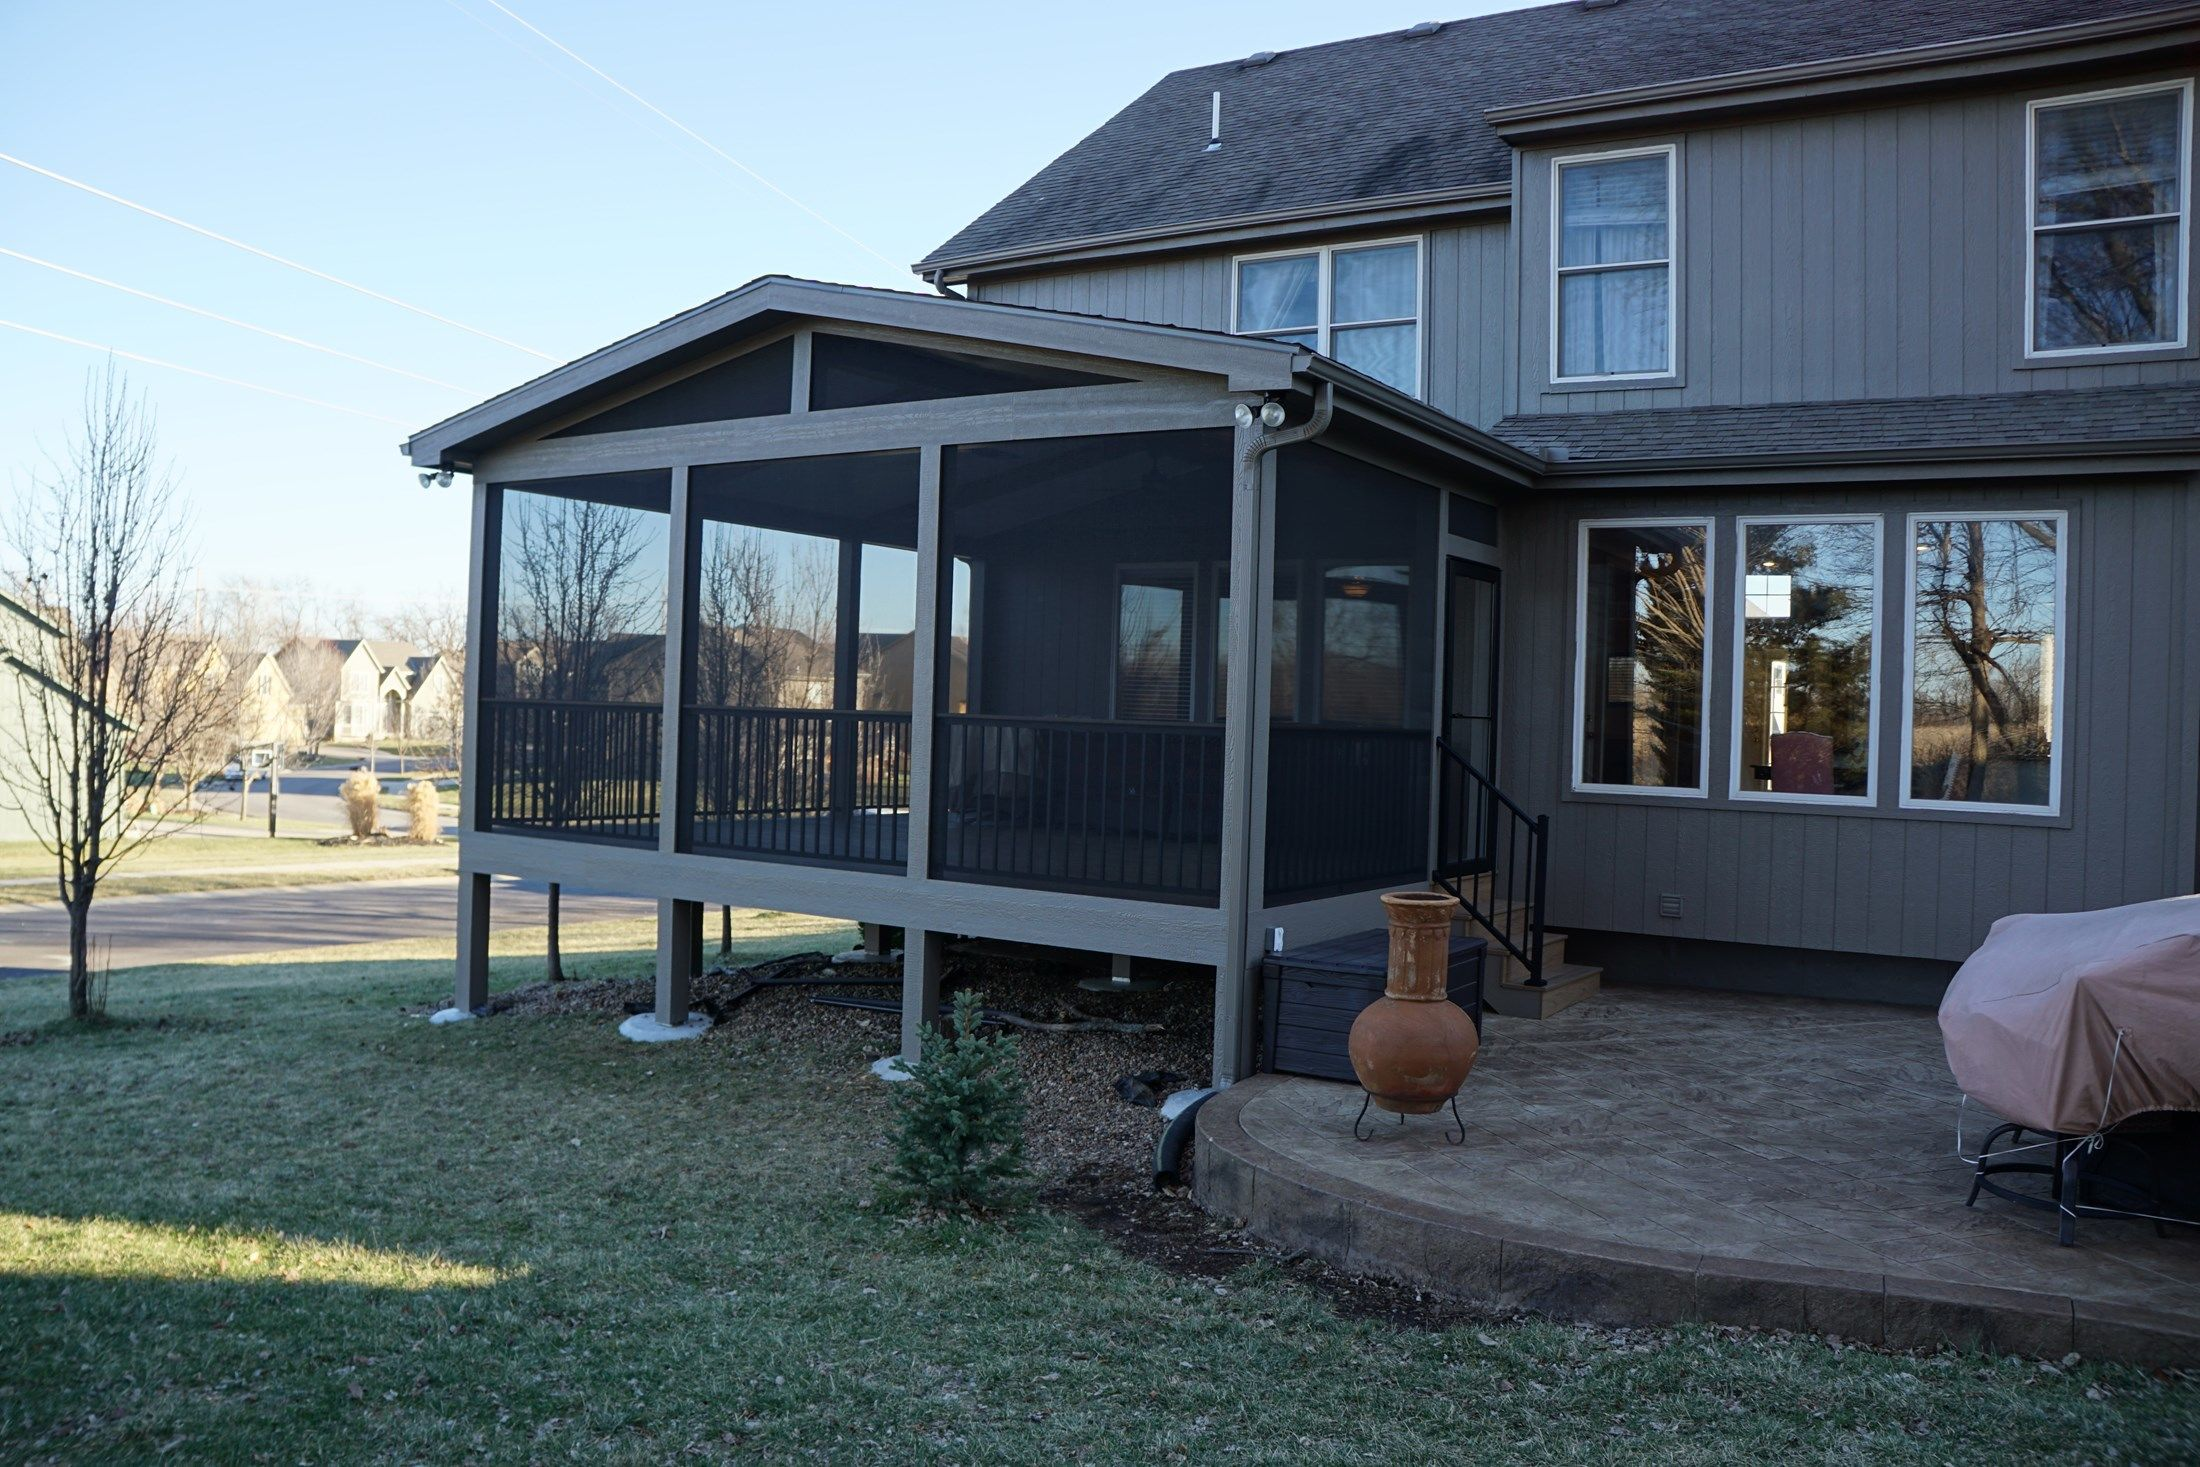 Gable Roof Screened Porch - Picture 5182